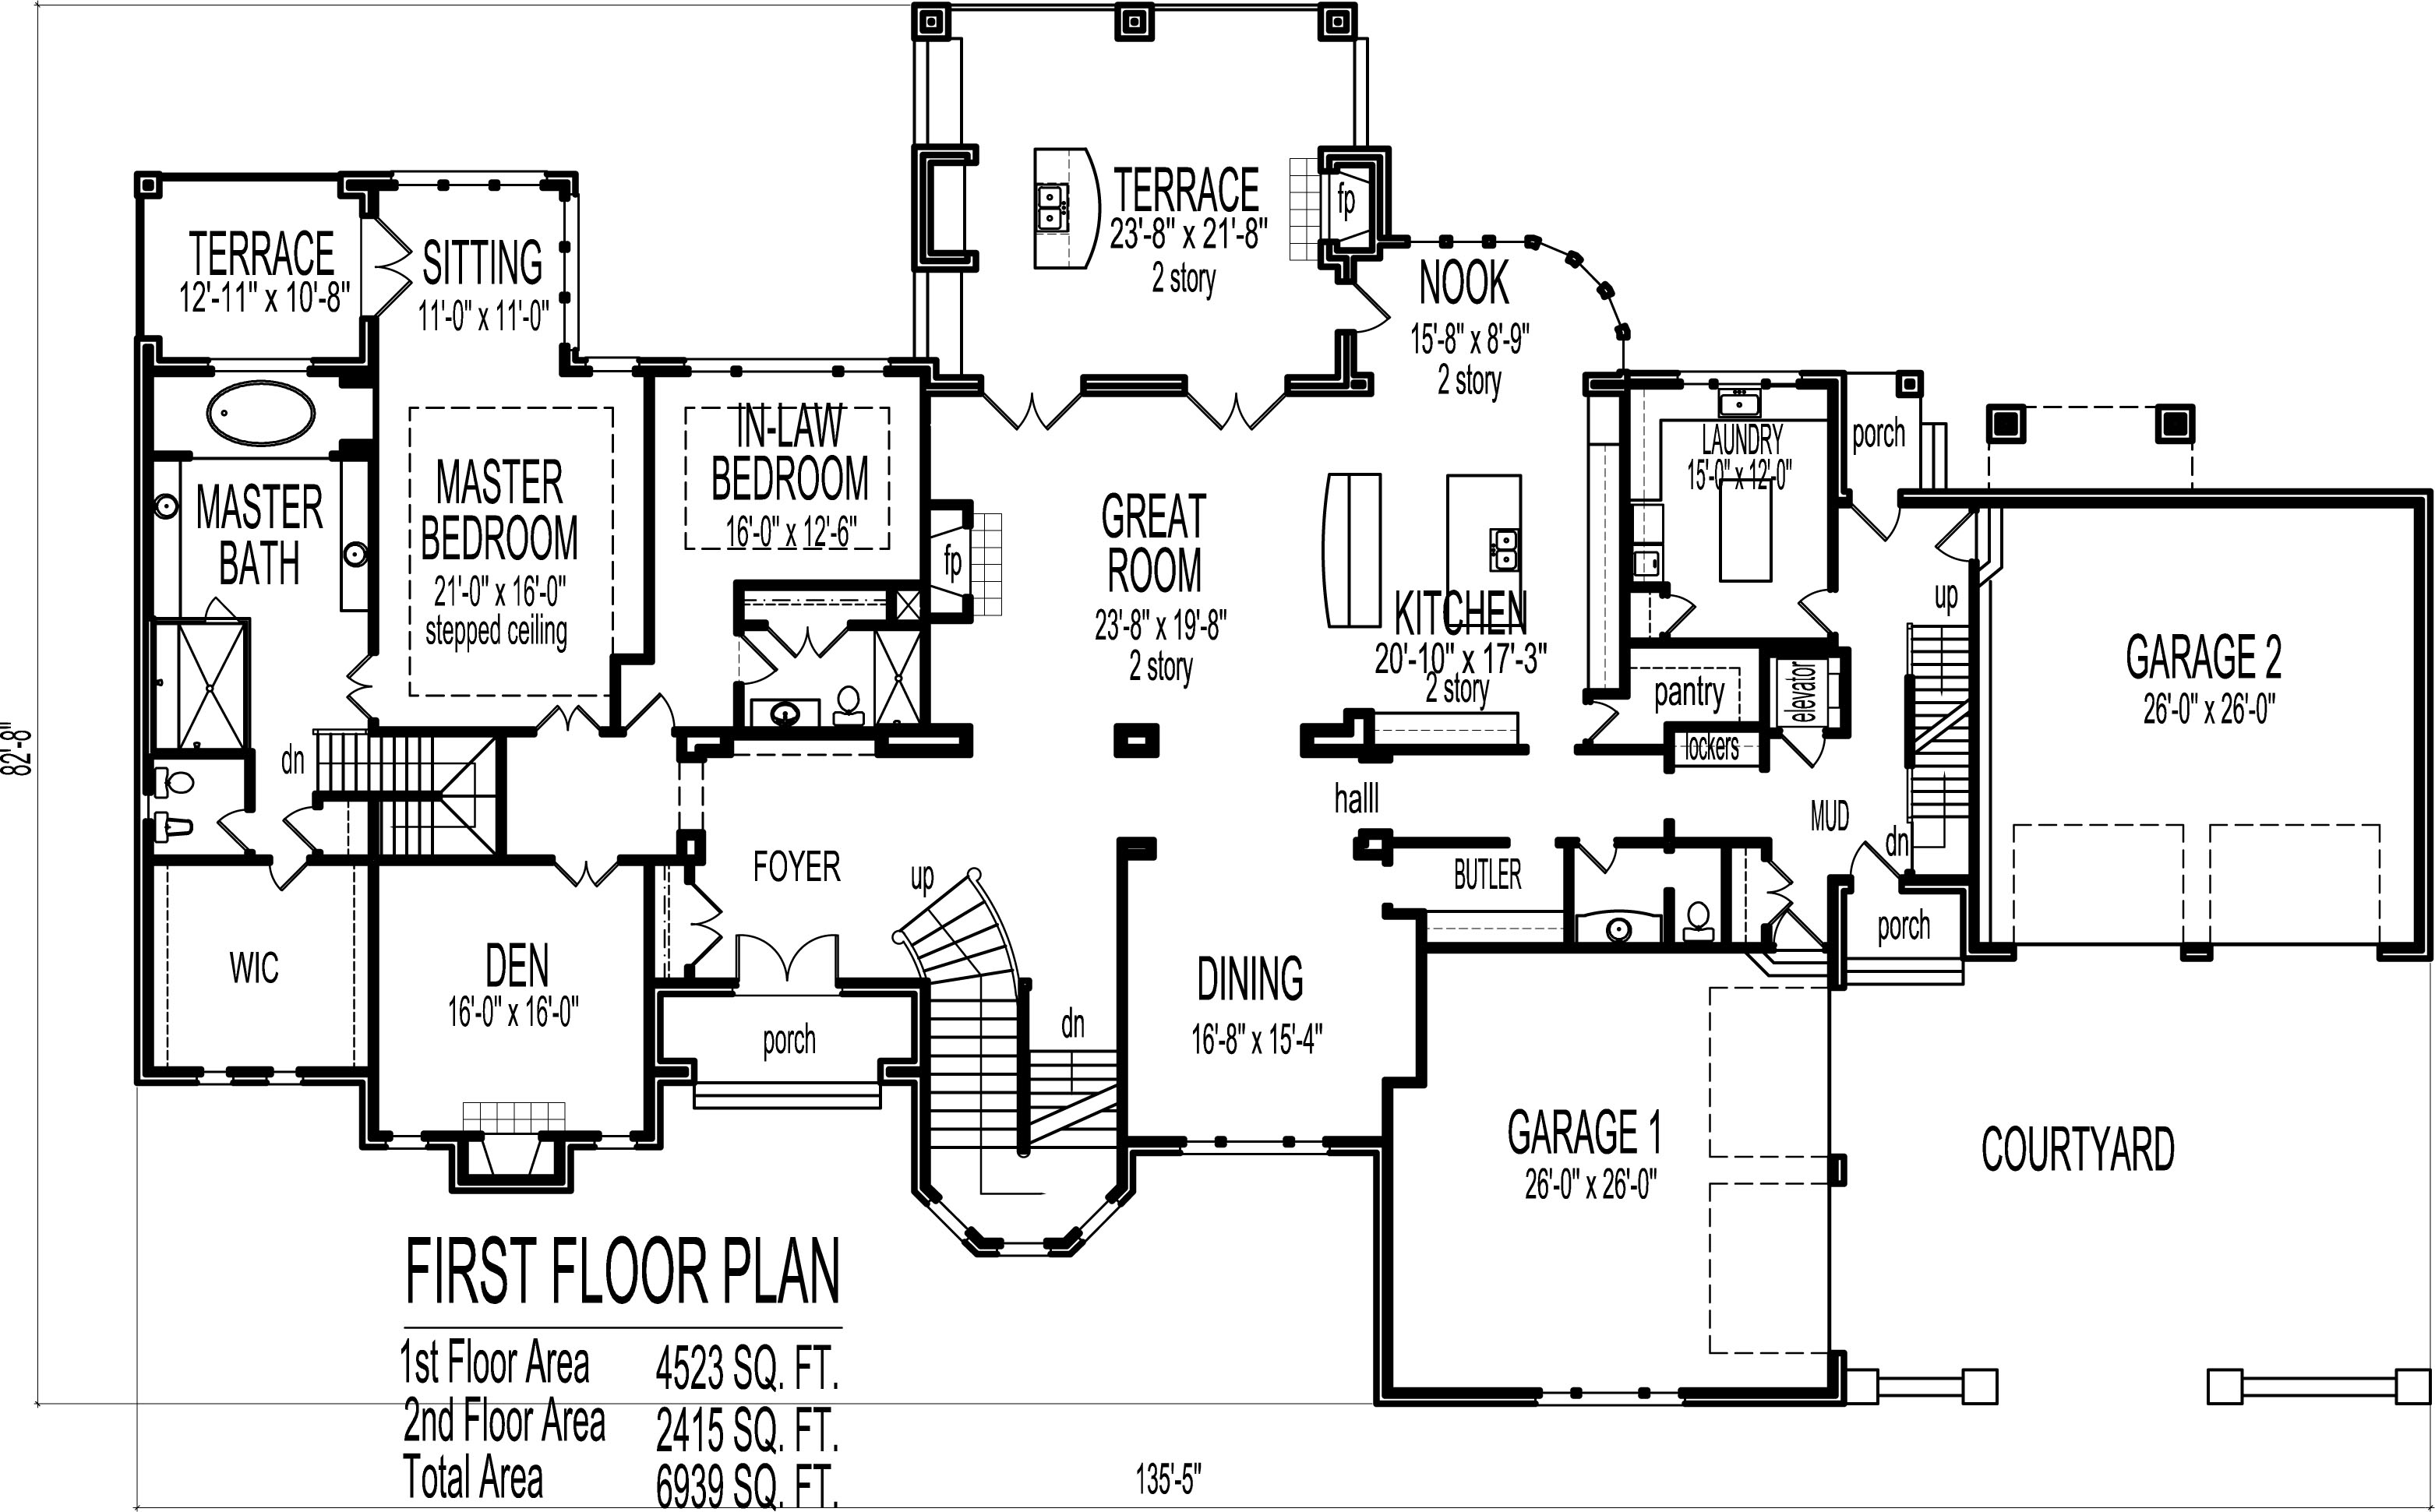 Beau 6 Bedroom 7 Bathroom Dream Home Plans Indianapolis Ft Wayne Evansville  Indiana South Bend Lafayette Bloomington